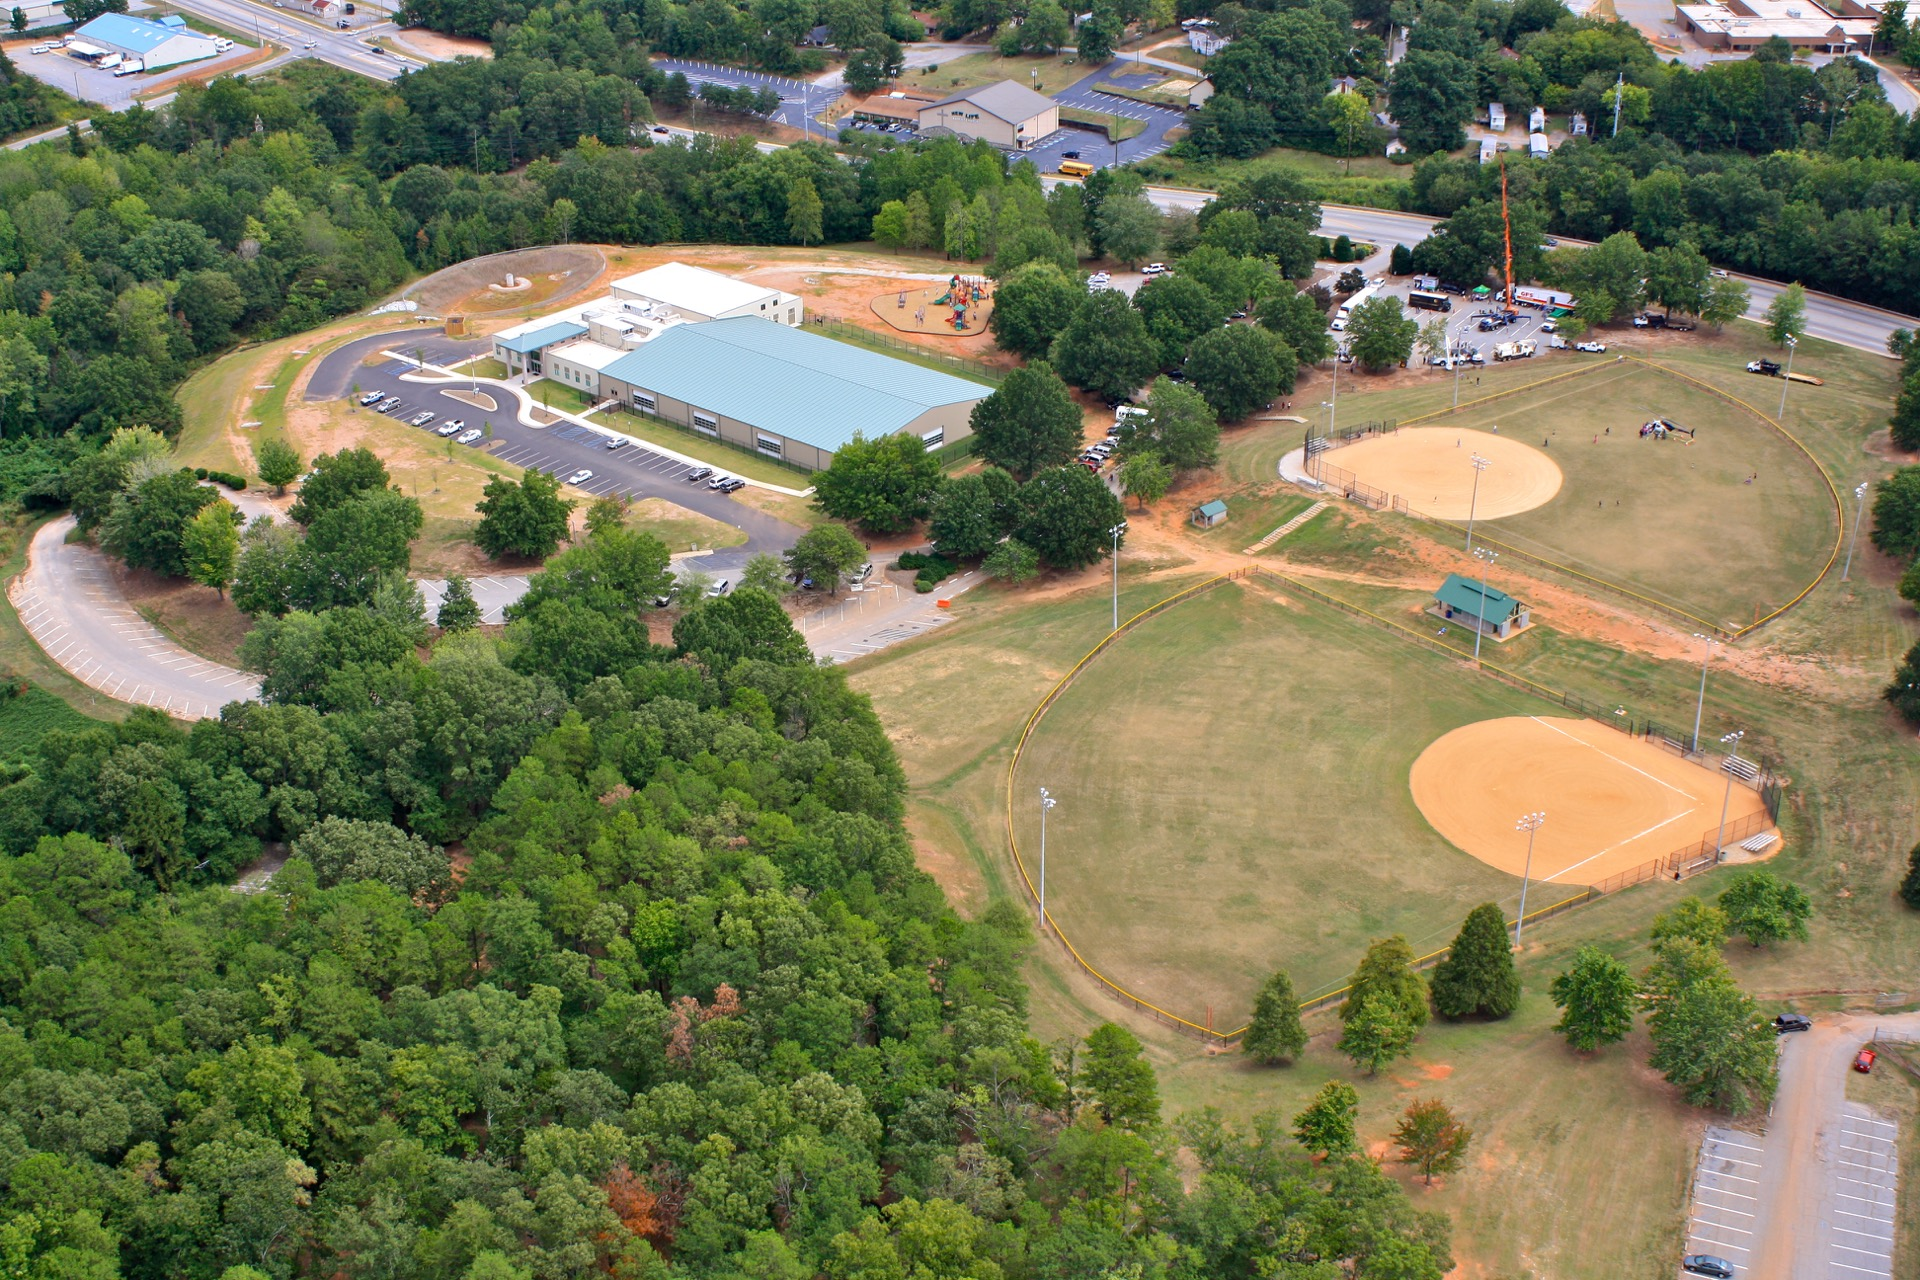 westside park aerial view